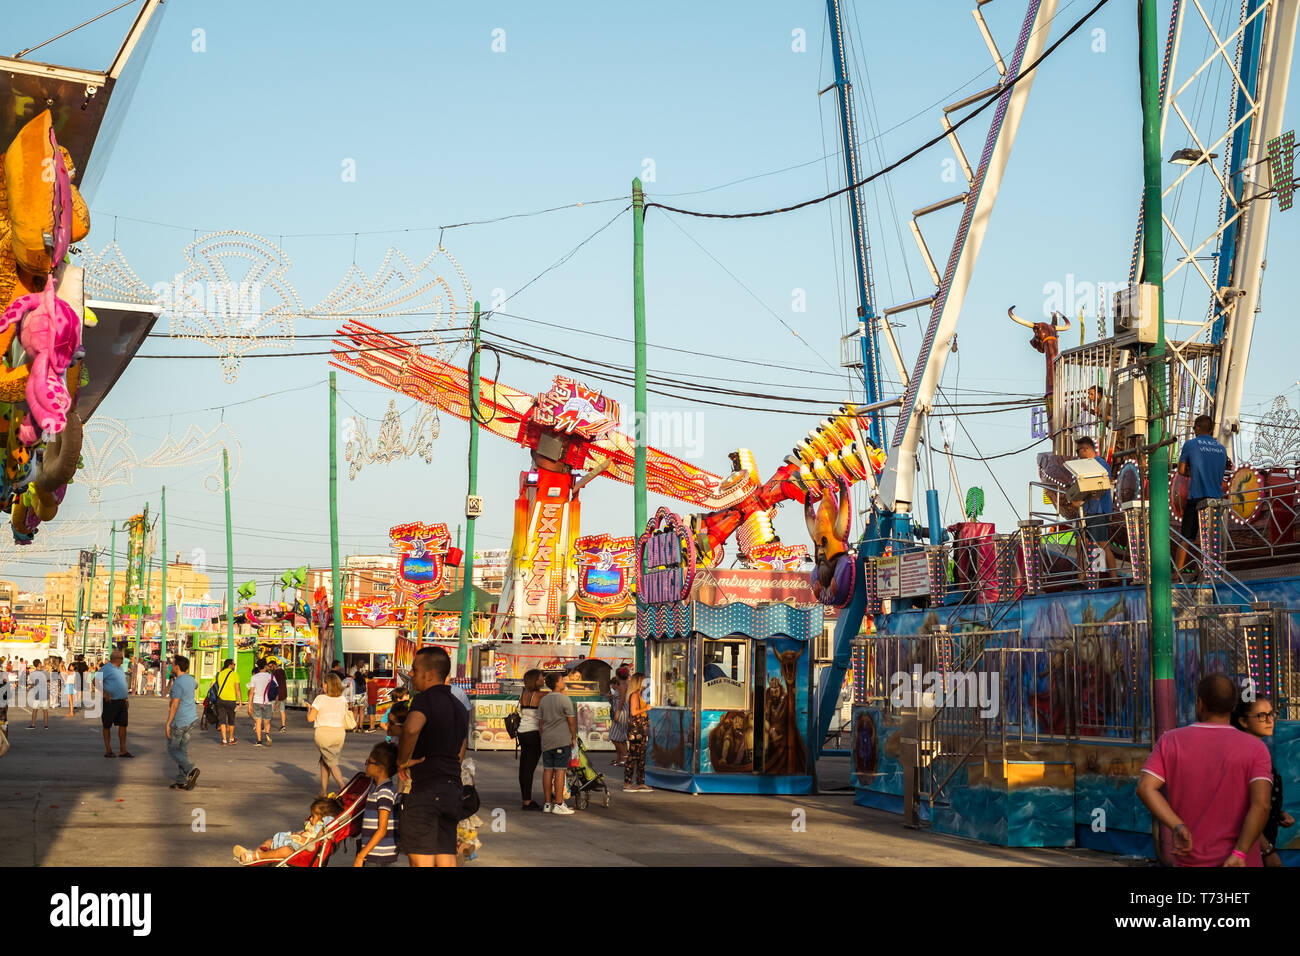 Malaga, Spain - August 11, 2018. Traditional Spanish Event. Feria de Malaga is an annual event that takes place in mid-August and is one of the larges - Stock Image